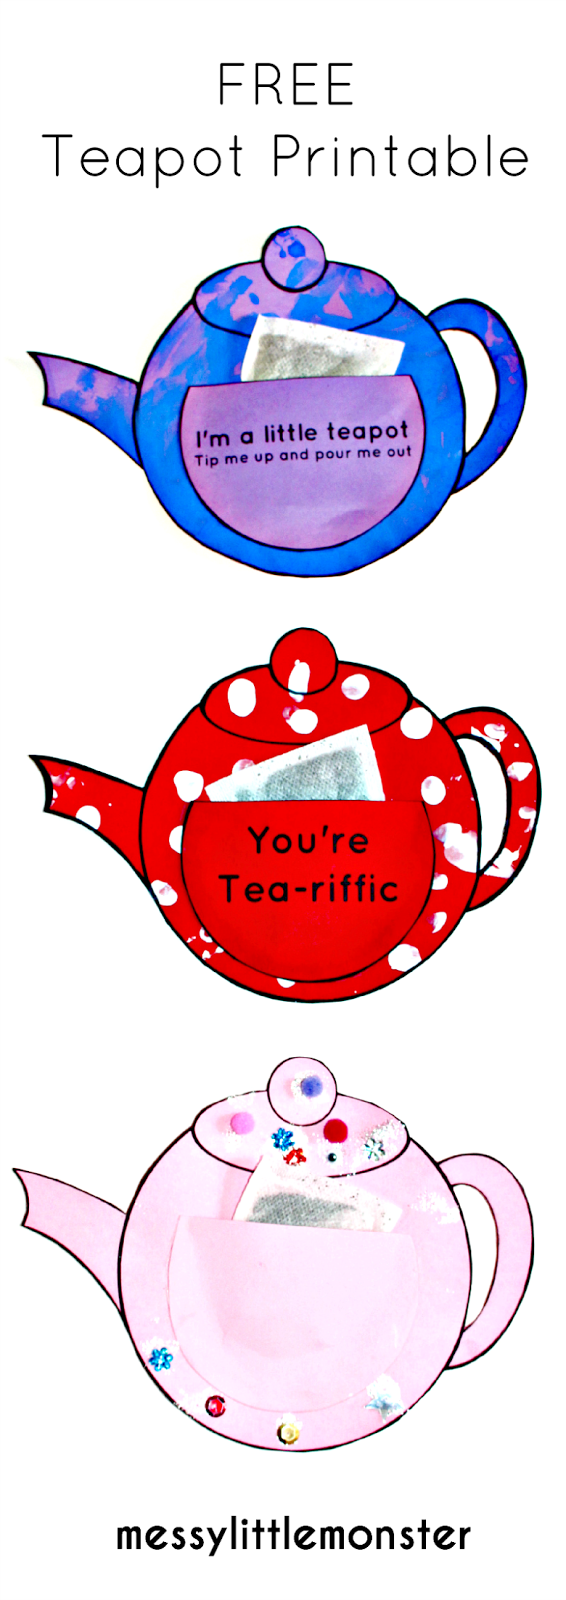 You're Tea-riffic easy teapot craft for kids with free printable teapot template. A simple paper craft and gift idea for babies, toddlers and preschoolers to make for mothers day, fathers day or as a teachers appreciation card. Also a fun activity to accompany the nursery rhyme 'I'm a little teapot'.